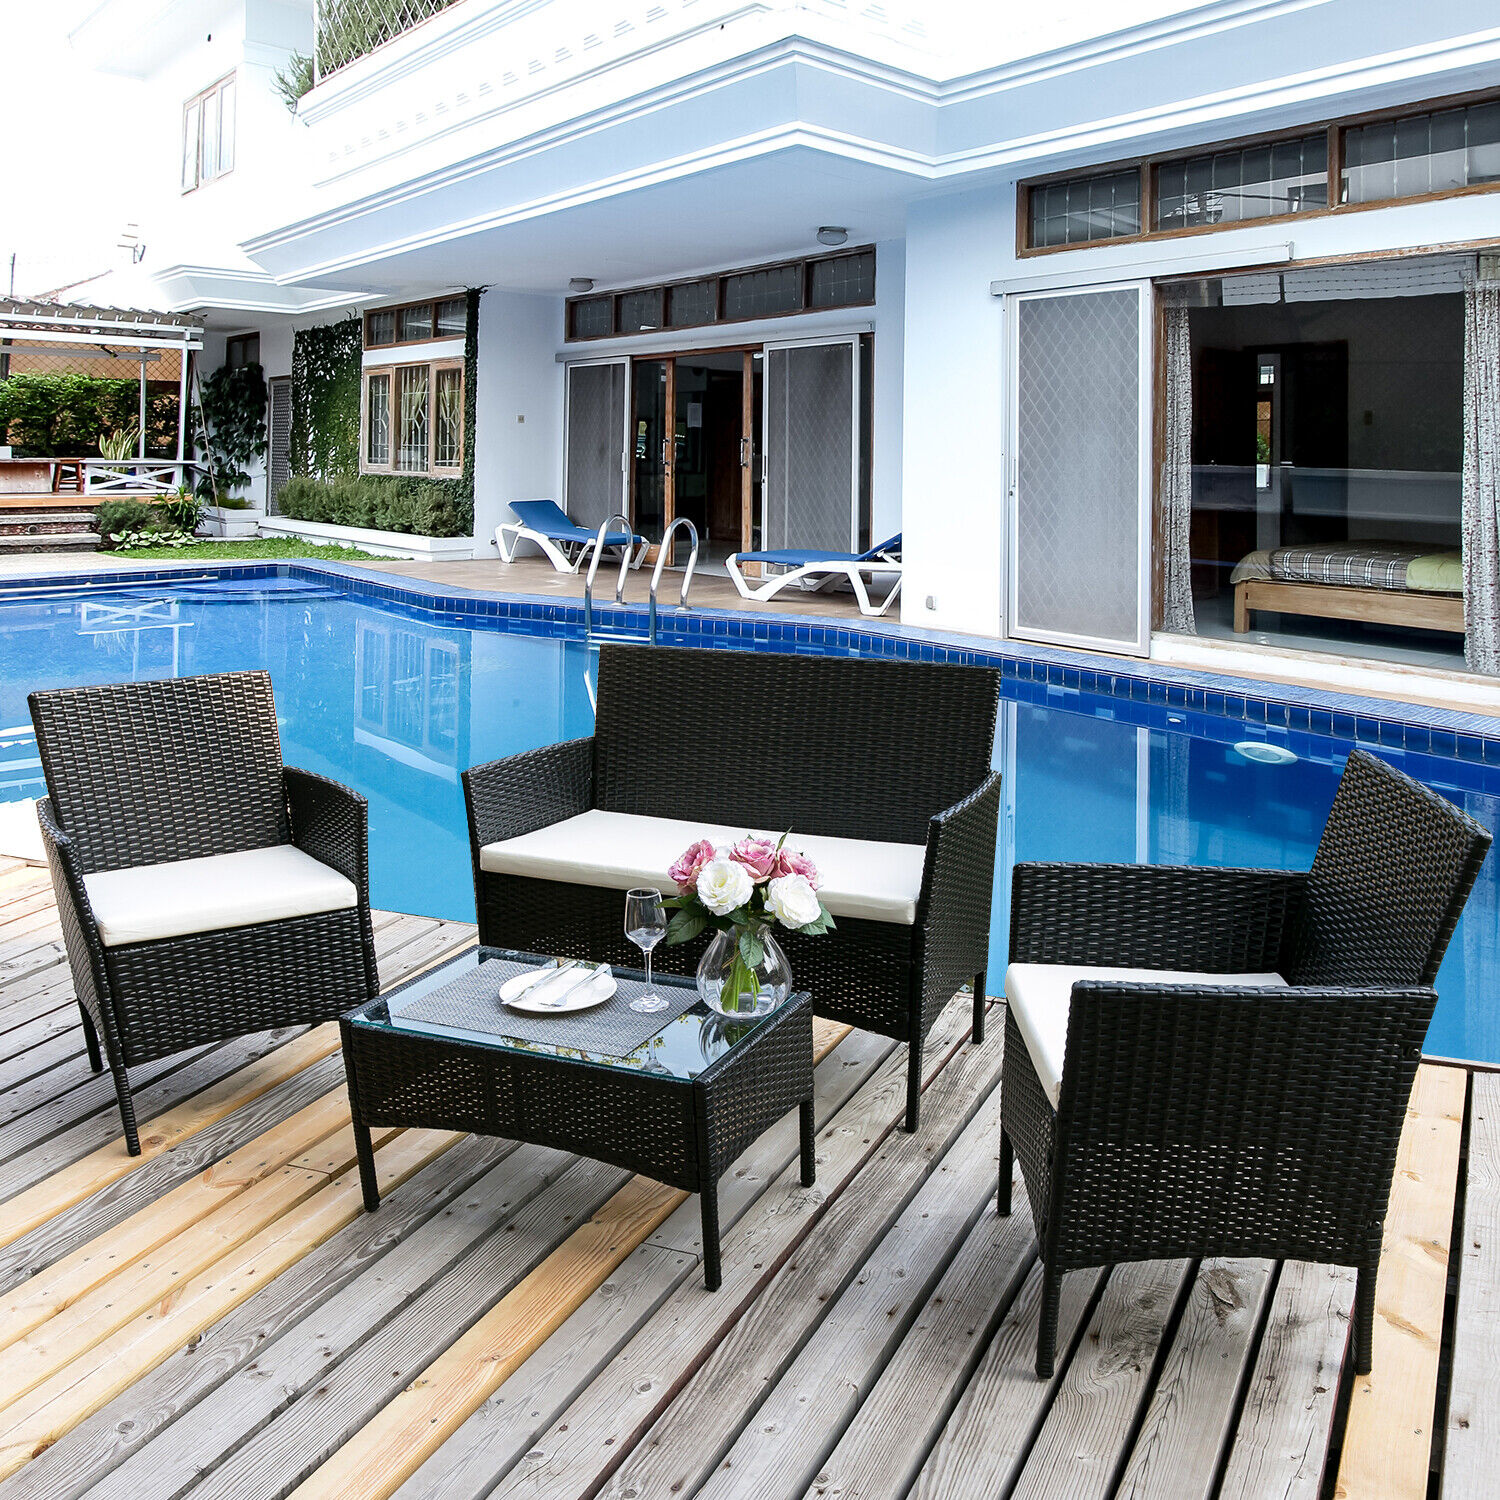 Garden Furniture - Garden Rattan Furniture Set Outdoor Indoor Conservatory Set Table Sofa 4 PCS